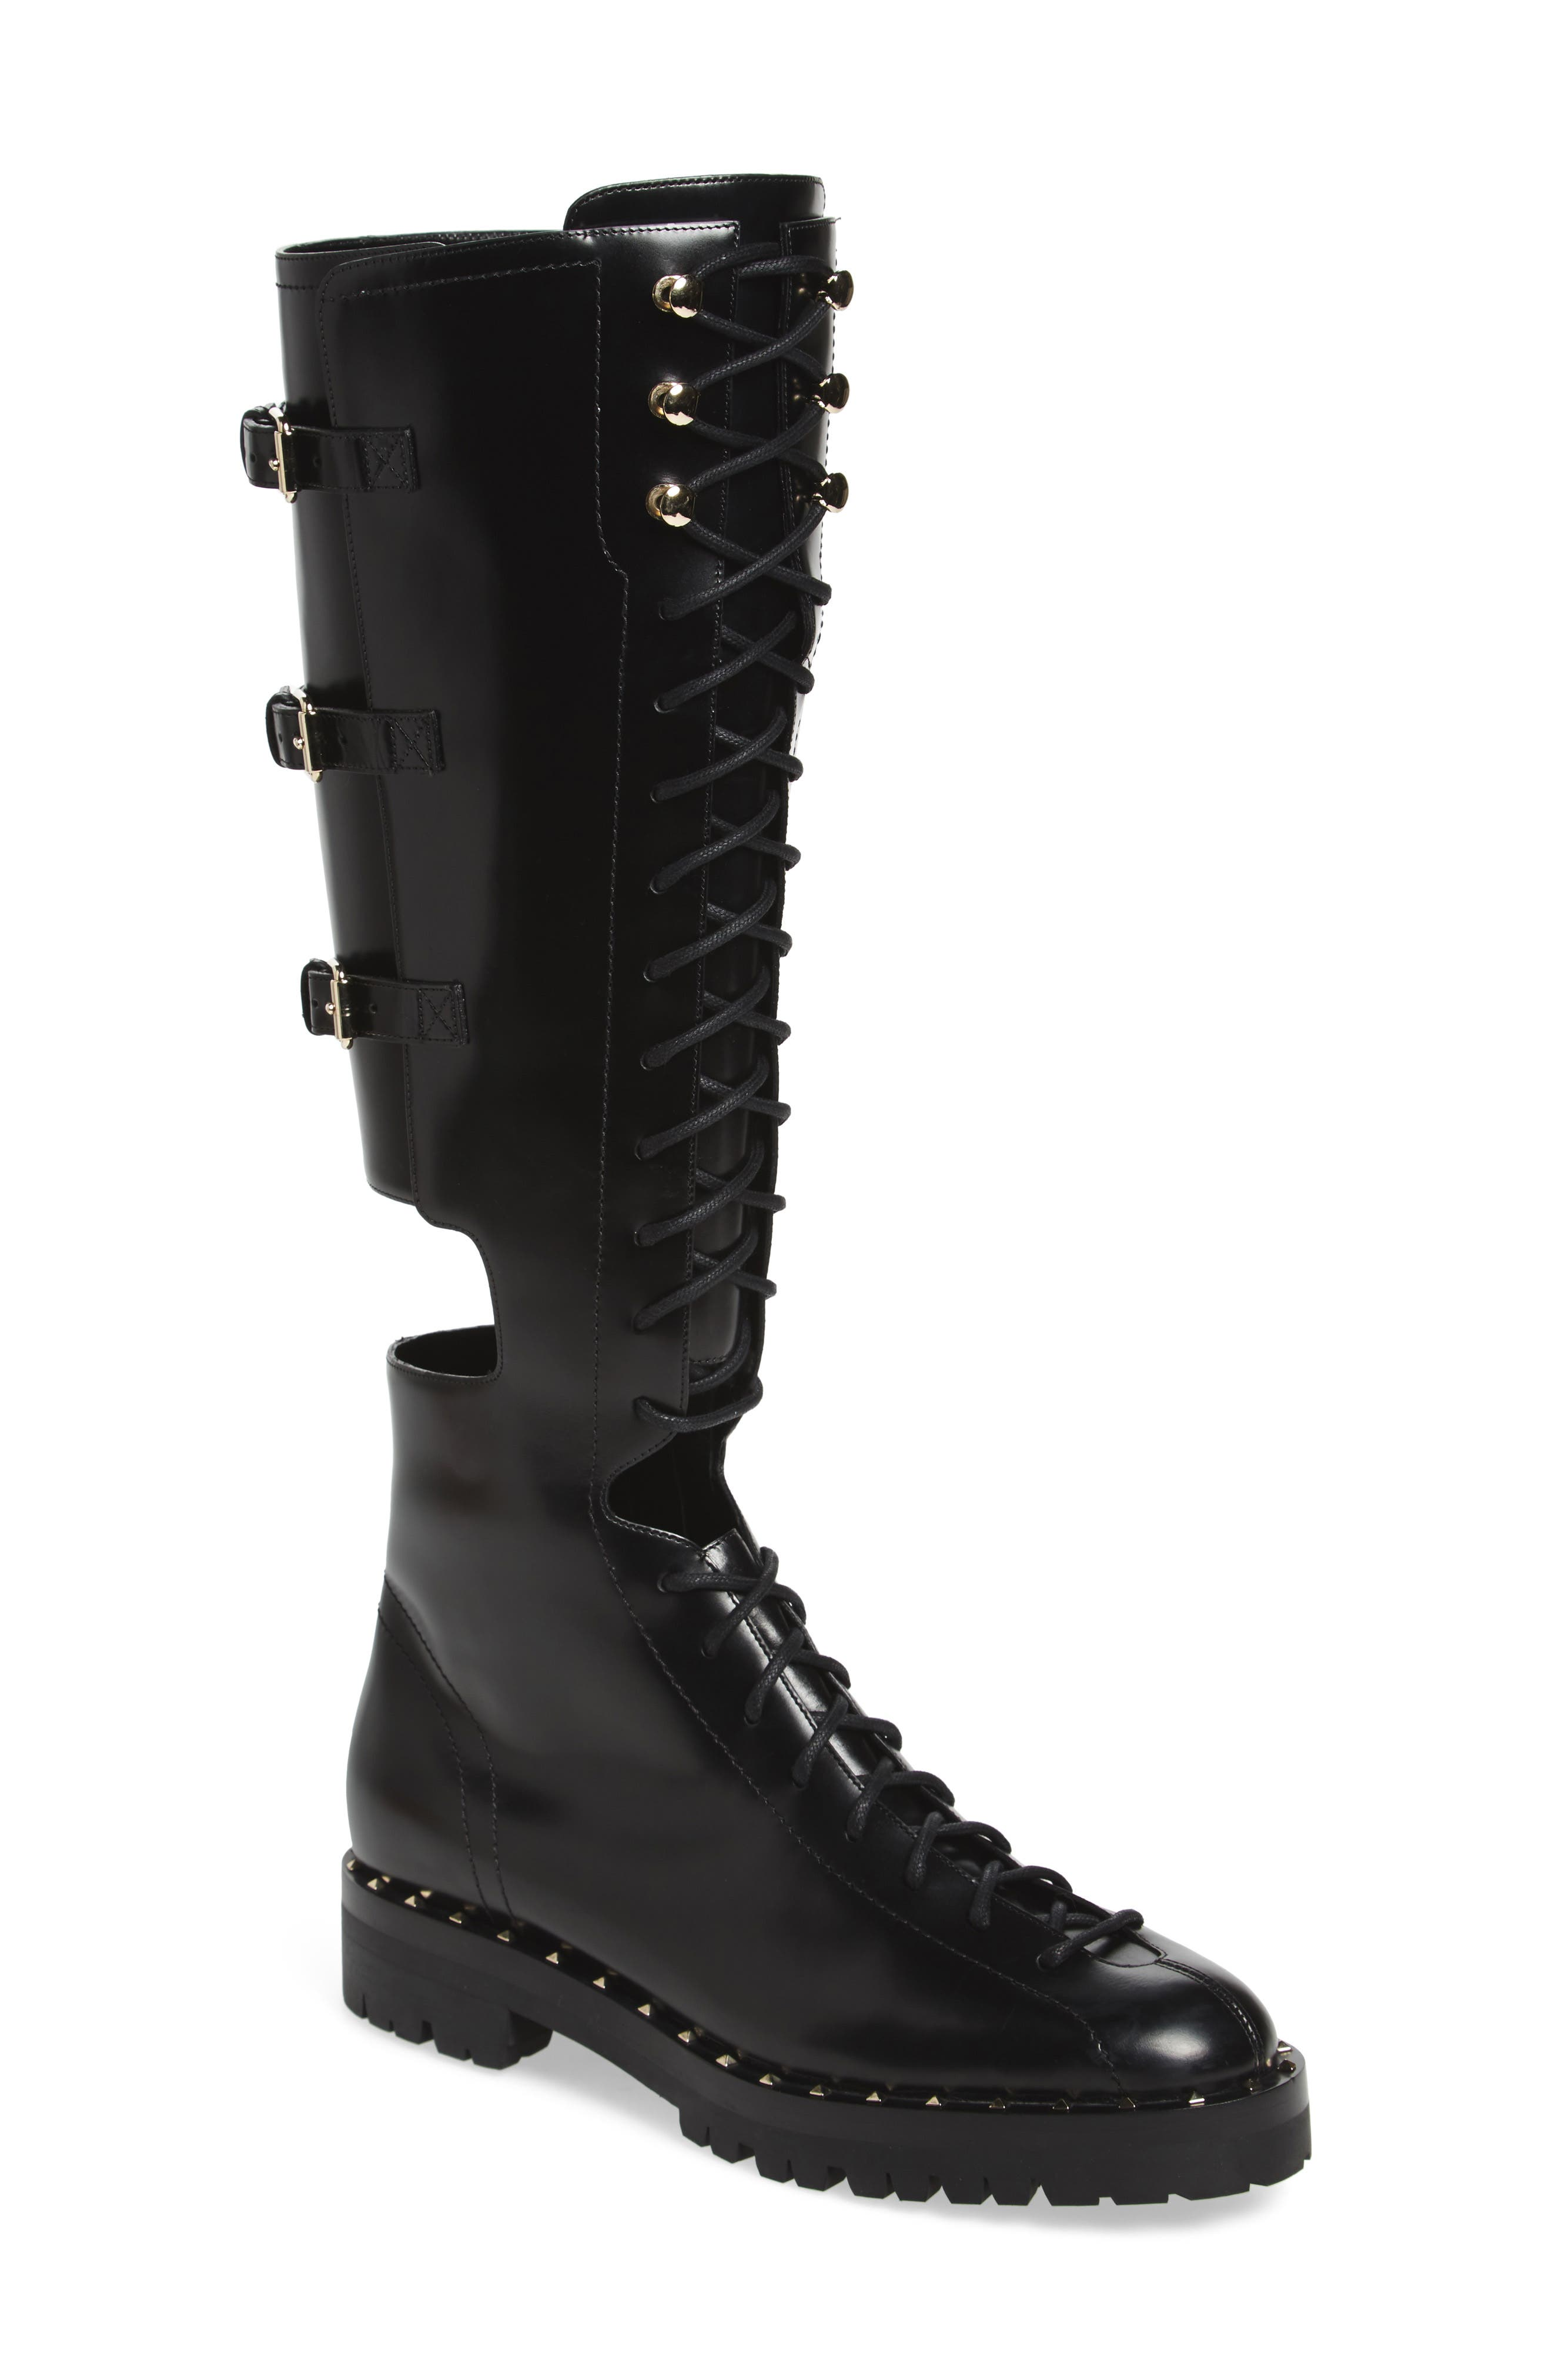 Alternate Image 1 Selected - VALENTINO GARAVANI Soul Rockstud Knee High Cutout Boot (Women)